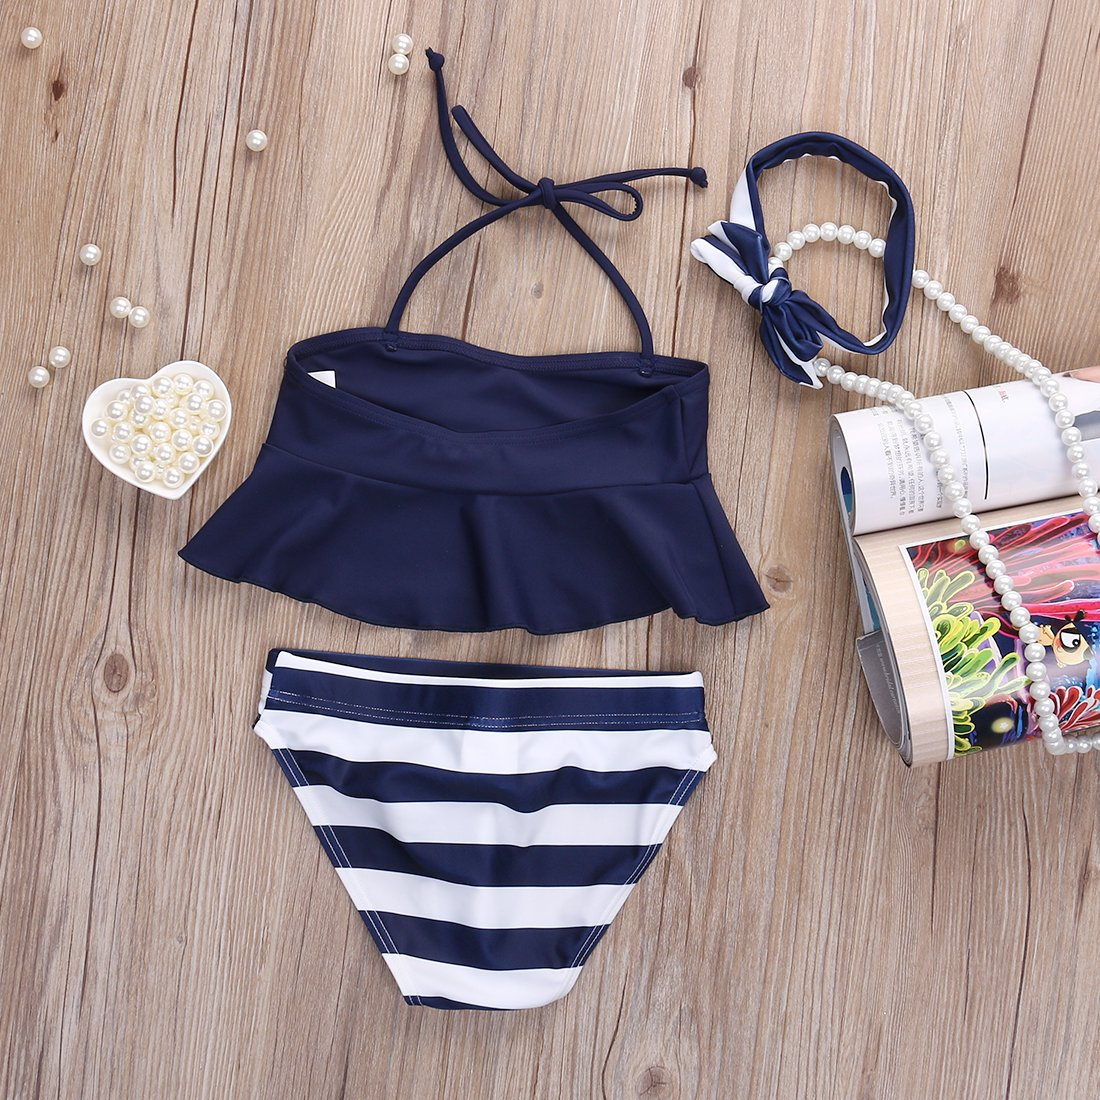 2019 Kids Baby Girl Bikini Suit Navy 3pcs Set Swimsuit Swimwear Bathing Swimming